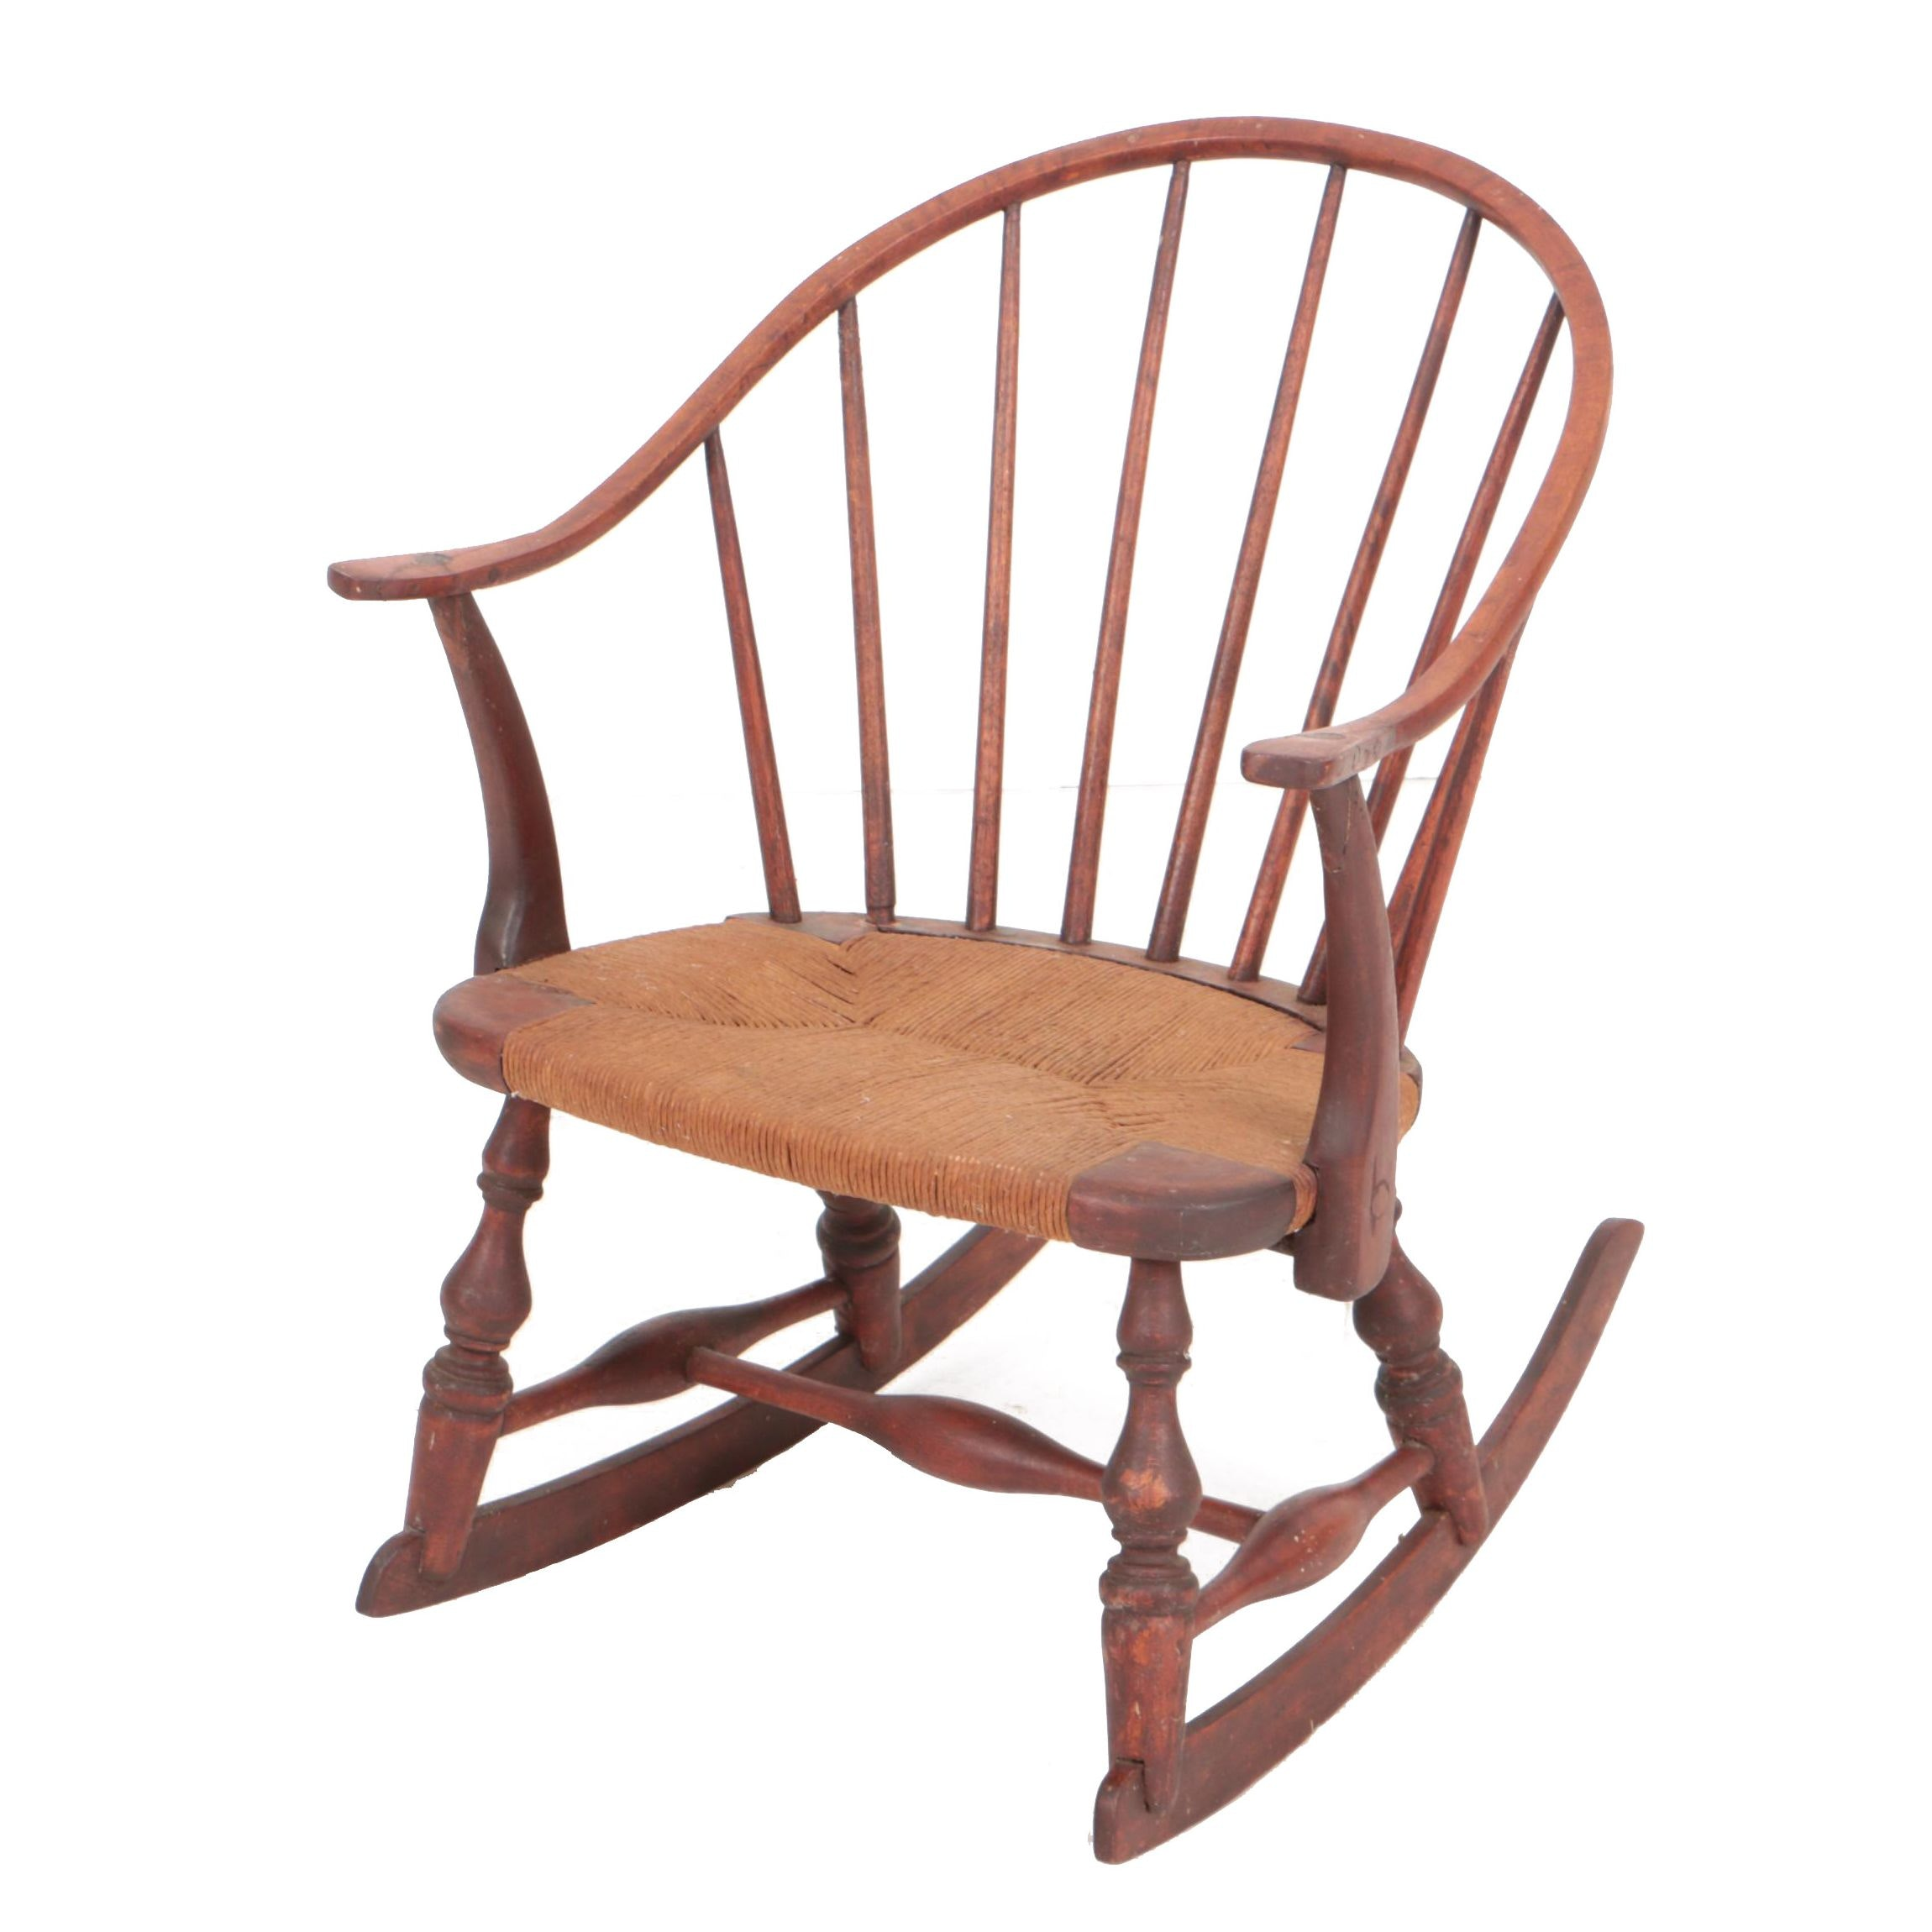 Vintage Windsor Style Child's Rocking Chair in Red Wash